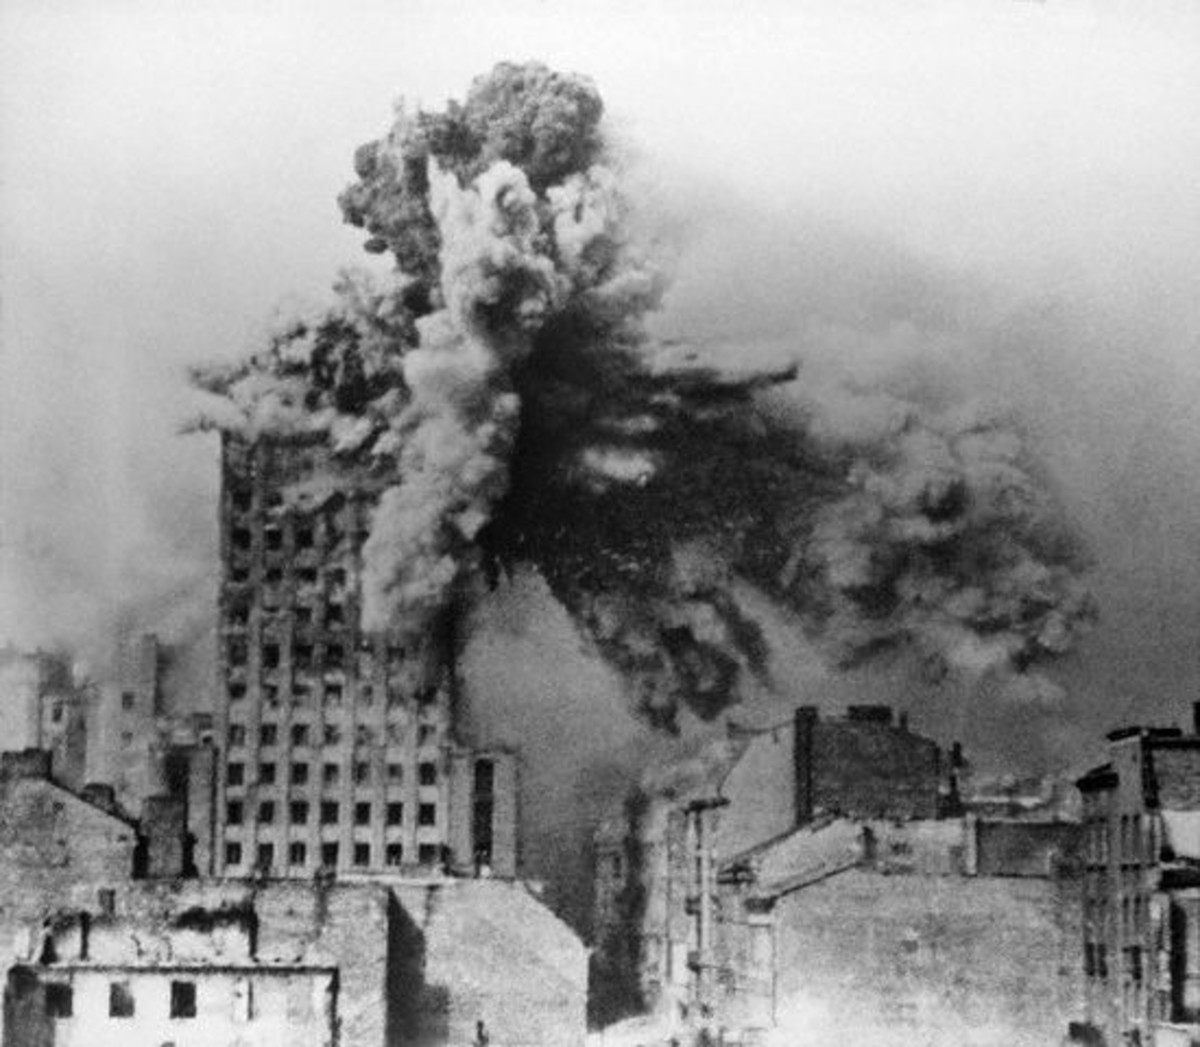 WW2: Warsaw Uprising. On August 28 the Prudential building was hit by a 2-ton mortar shell from a Karl Morser (mortar).